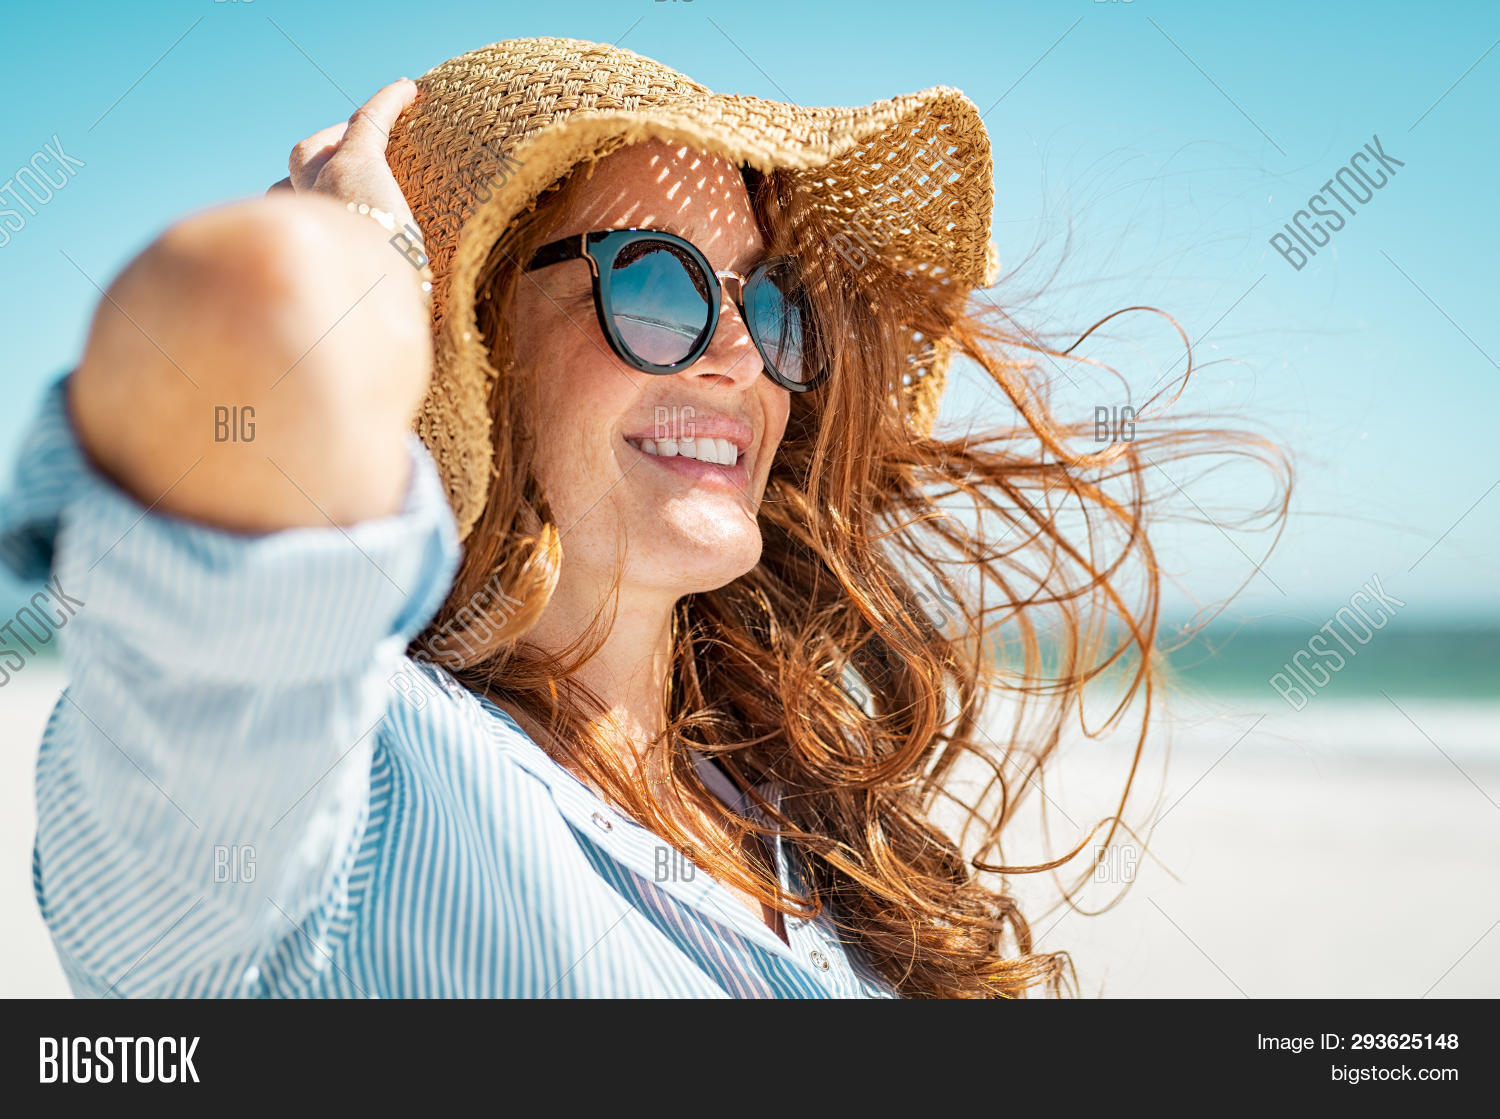 attractive,beach,beautiful,breeze,care,carefree,carefree woman,cheerful,enjoying,face,fun,girl,hair,happiness,happy,hat,holiday,lifestyle,looking away,mature,mid adult woman,middle aged woman,people,pretty,protection,red,relax,sea,seaside,shades,skin,skin care,skincare,smile,straw,straw hat,summer,sun,sunbath,sunglasses,tanning,thinking,toothy smile,travel,tropical,vacation,wind,windy hair,young,young woman